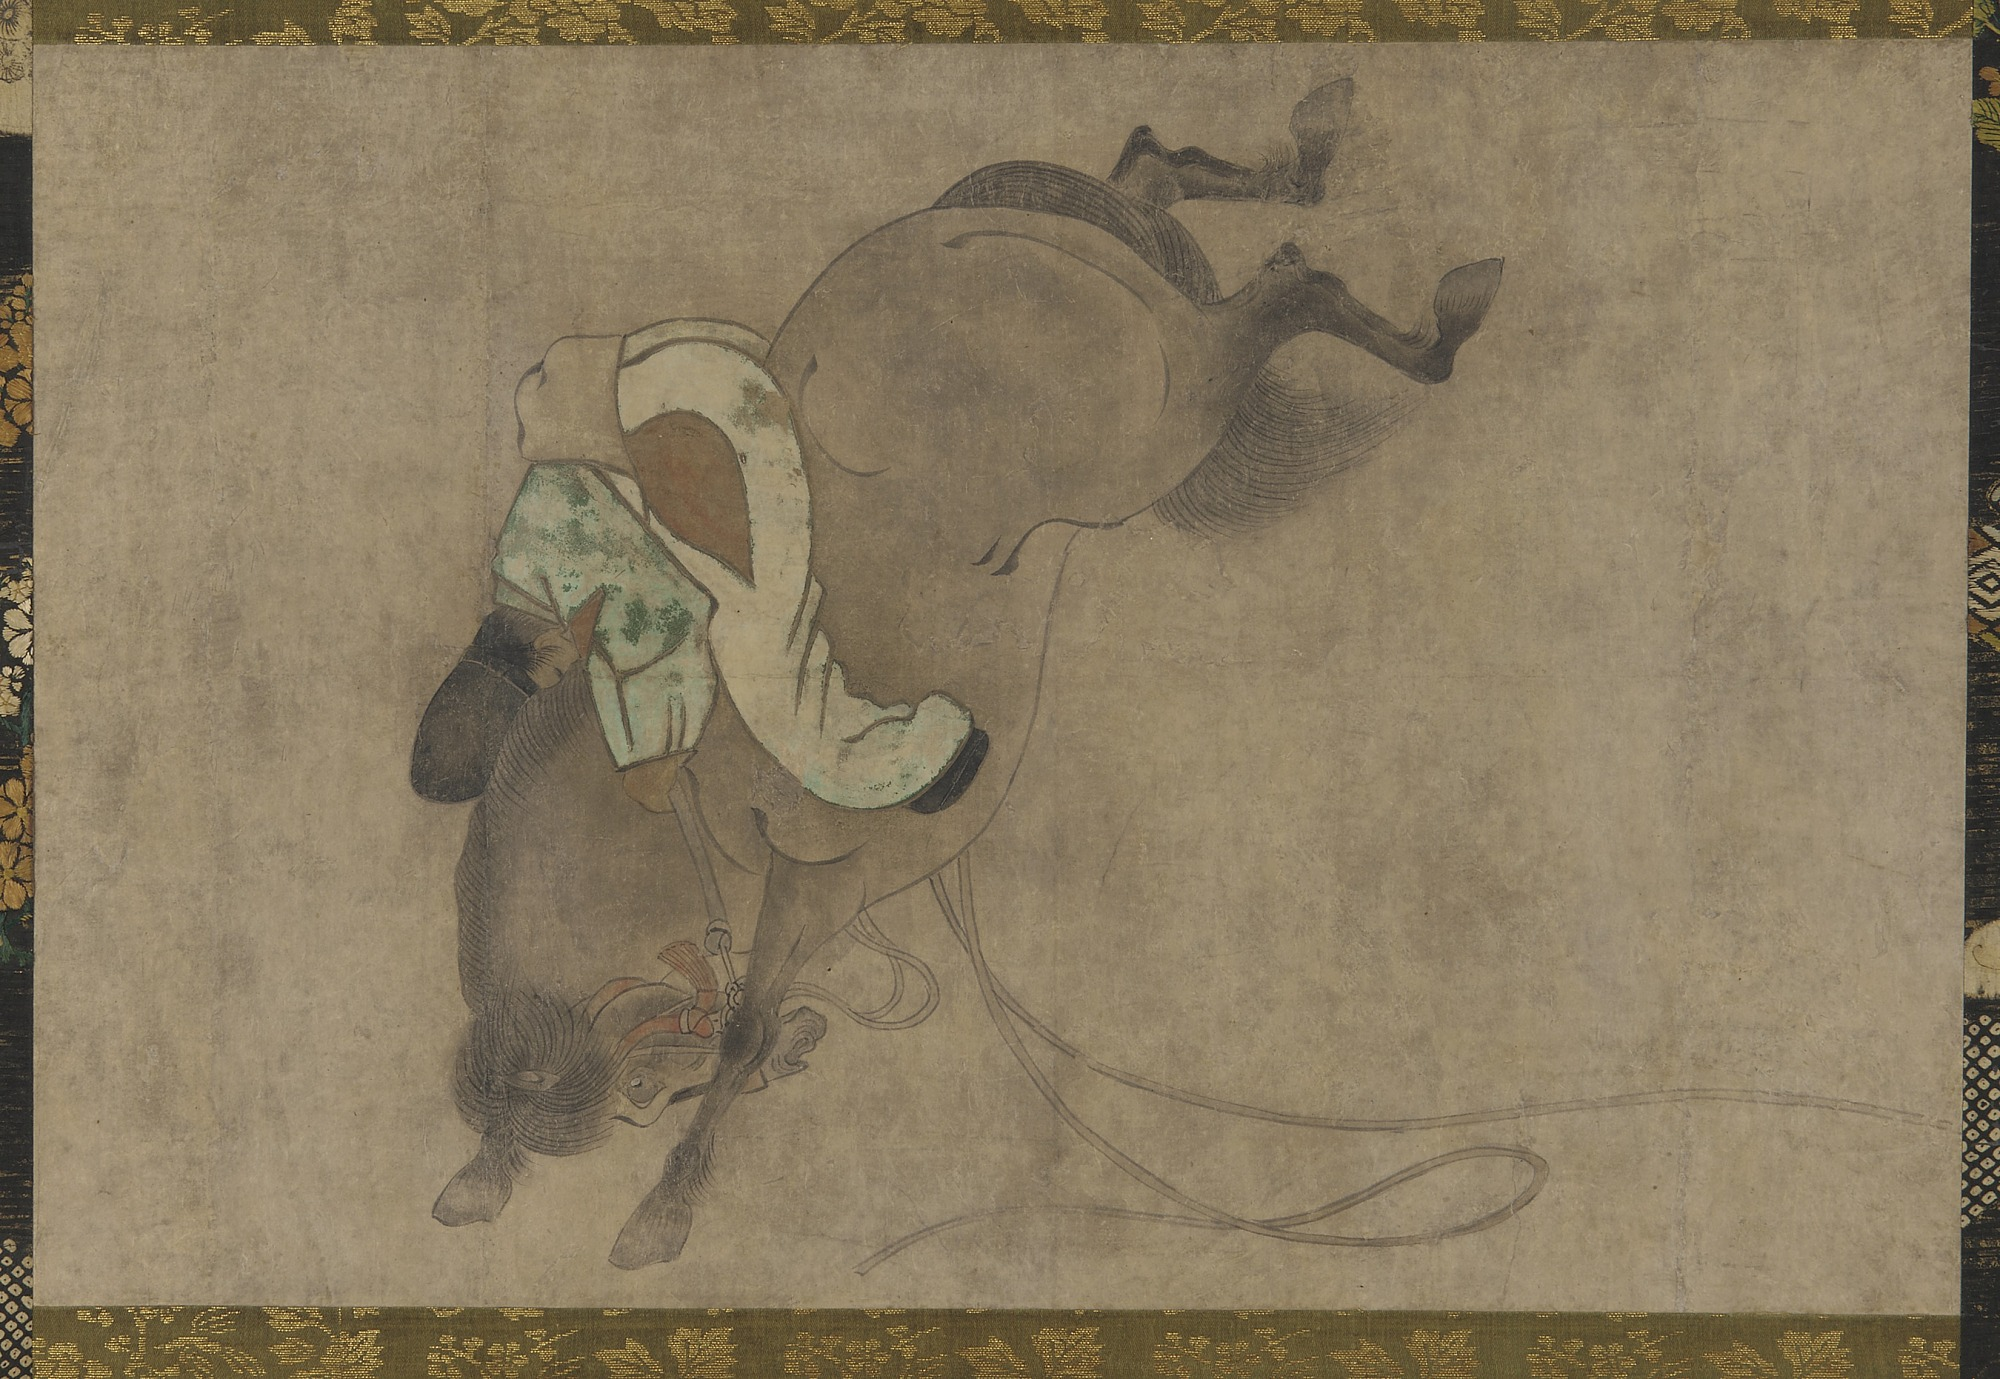 image: Horse and Rider